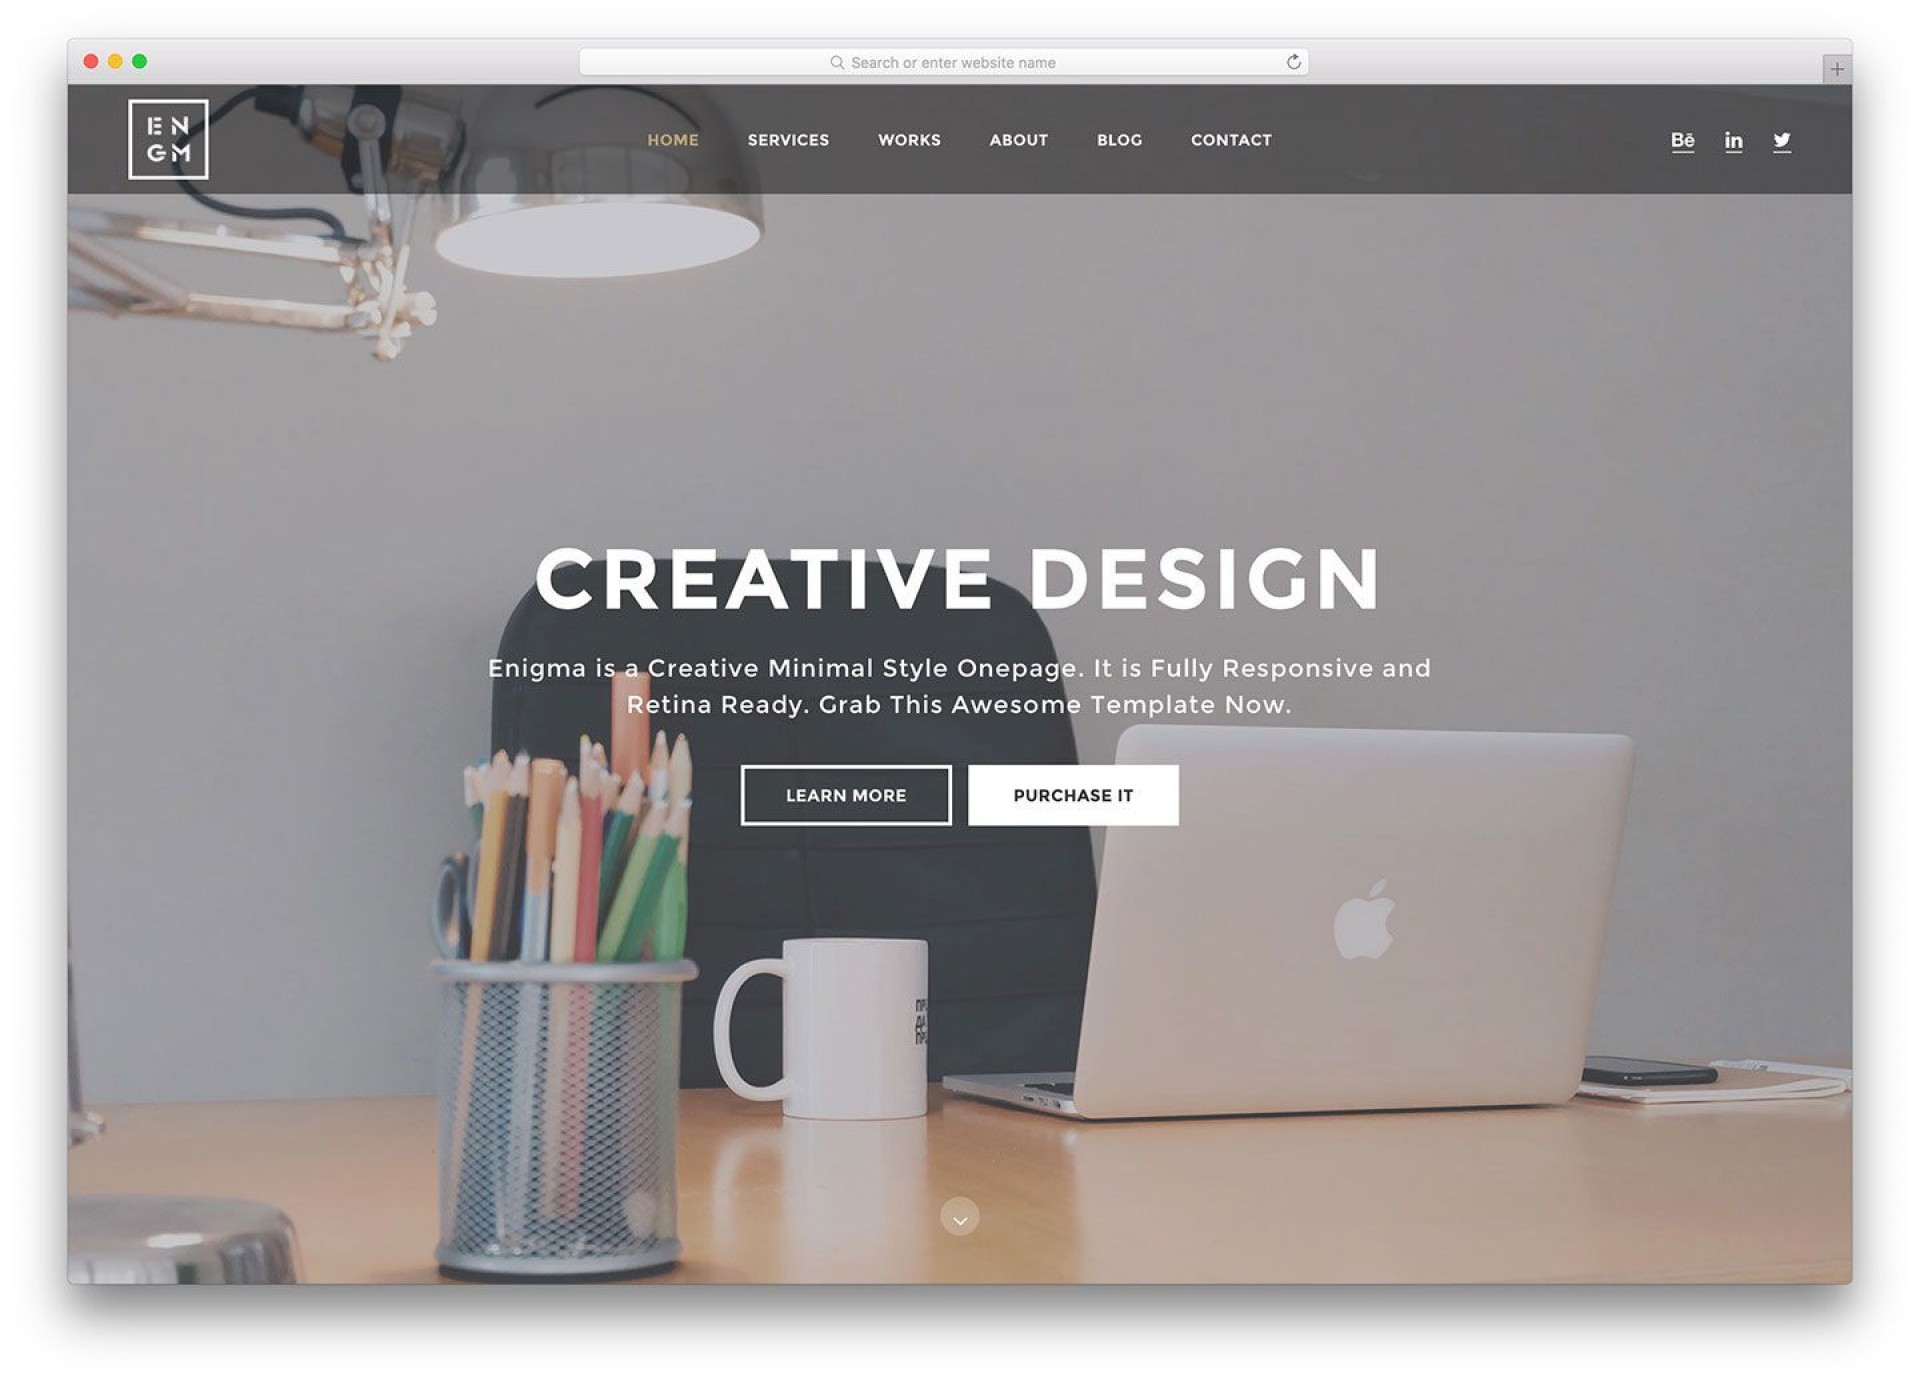 007 Archaicawful Product Website Template Html Free Download High Definition  With Cs1920